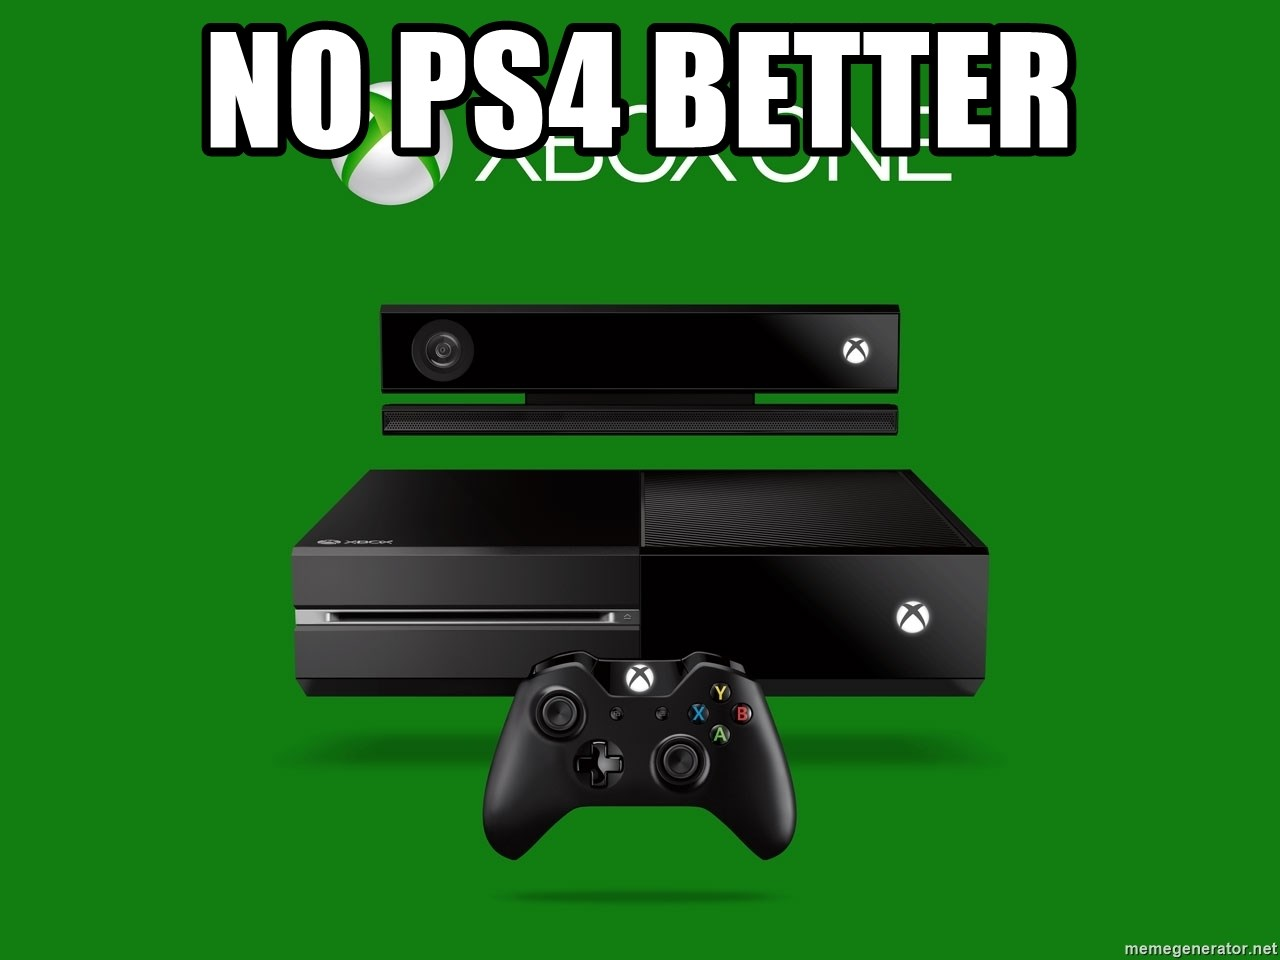 xbox one = crap - NO PS4 BETTER